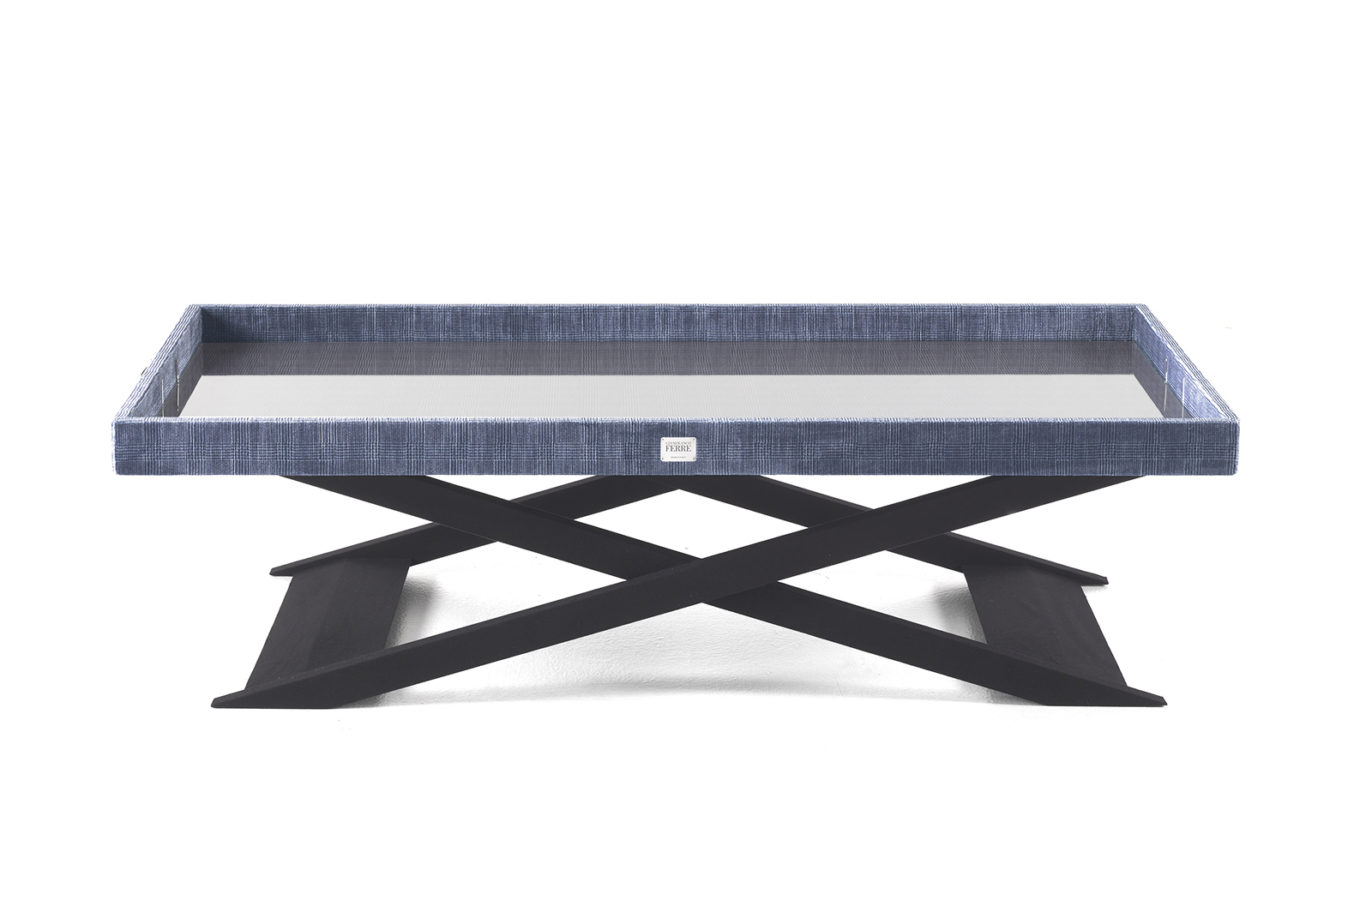 Gianfranco Ferre Home Kensington Central Table 02